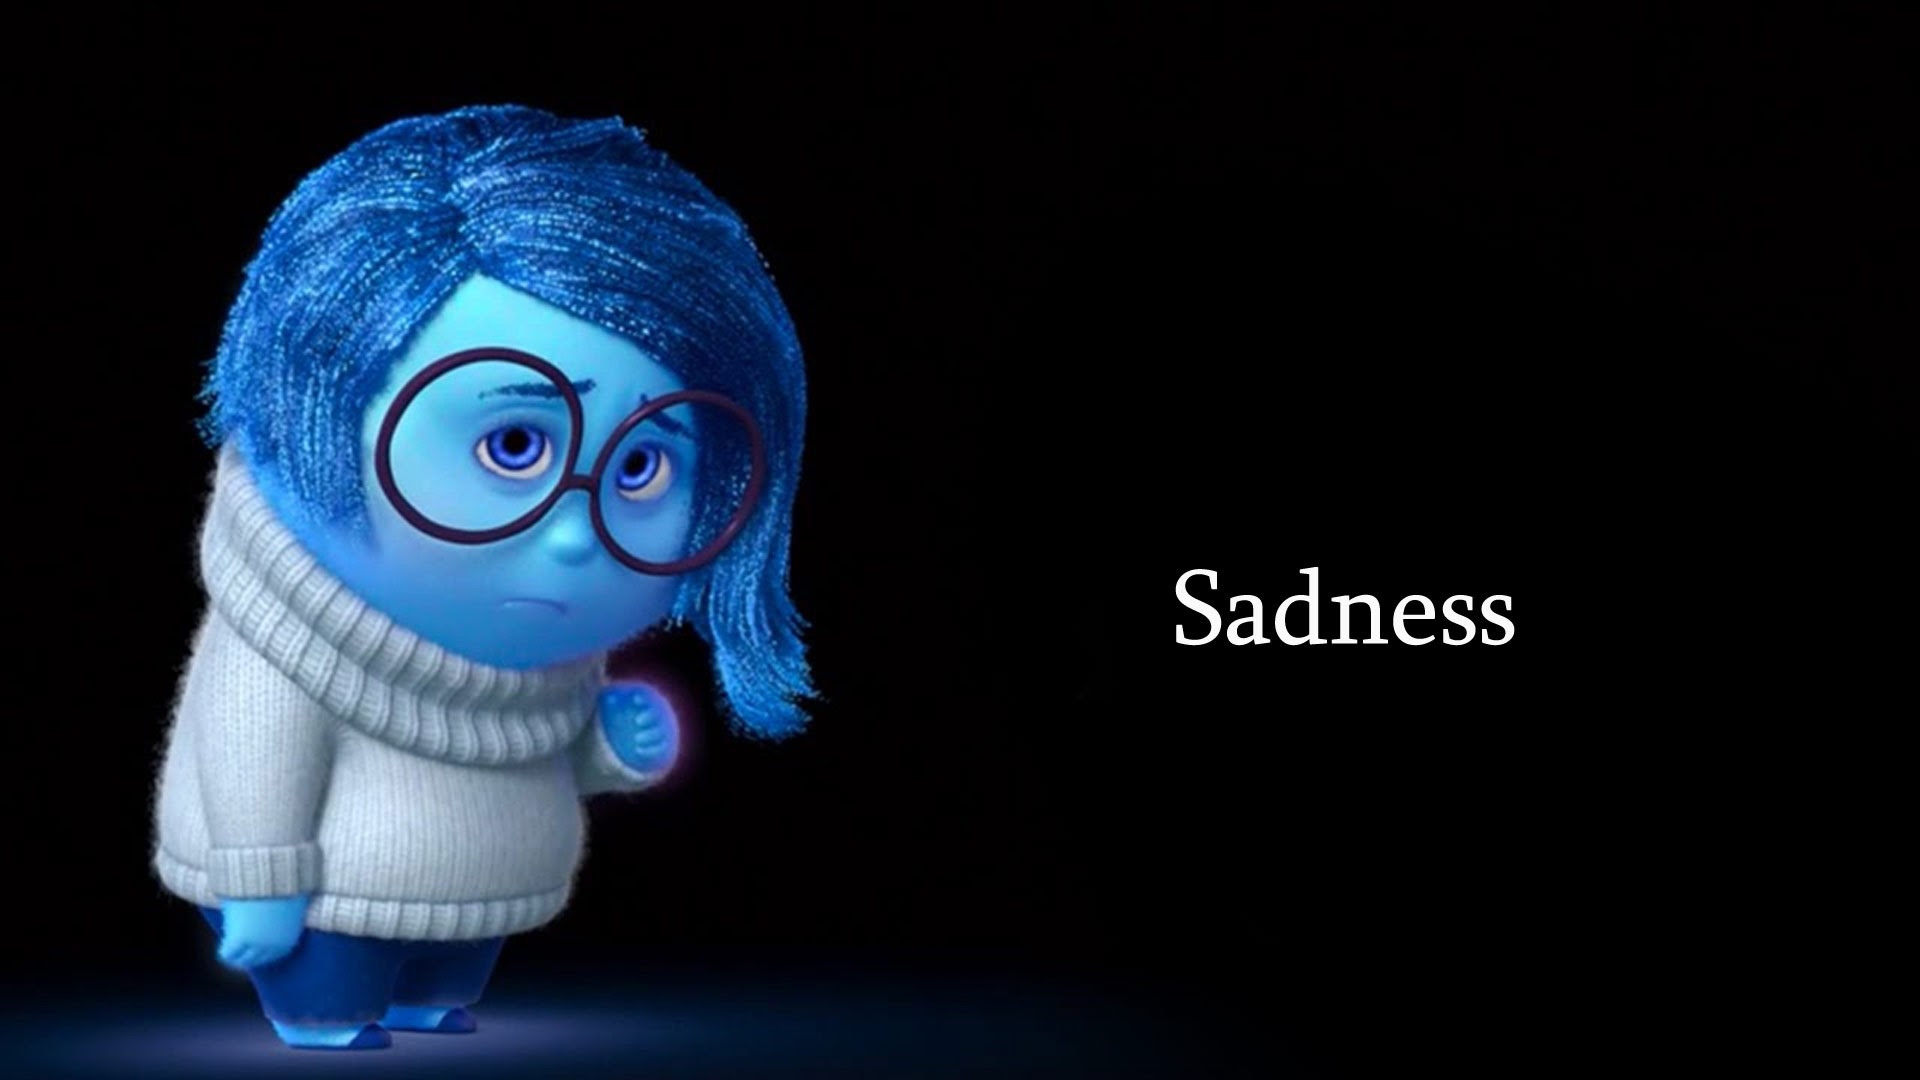 Childhood Animated Movie Heroines Images Inside Out Sadness Hd